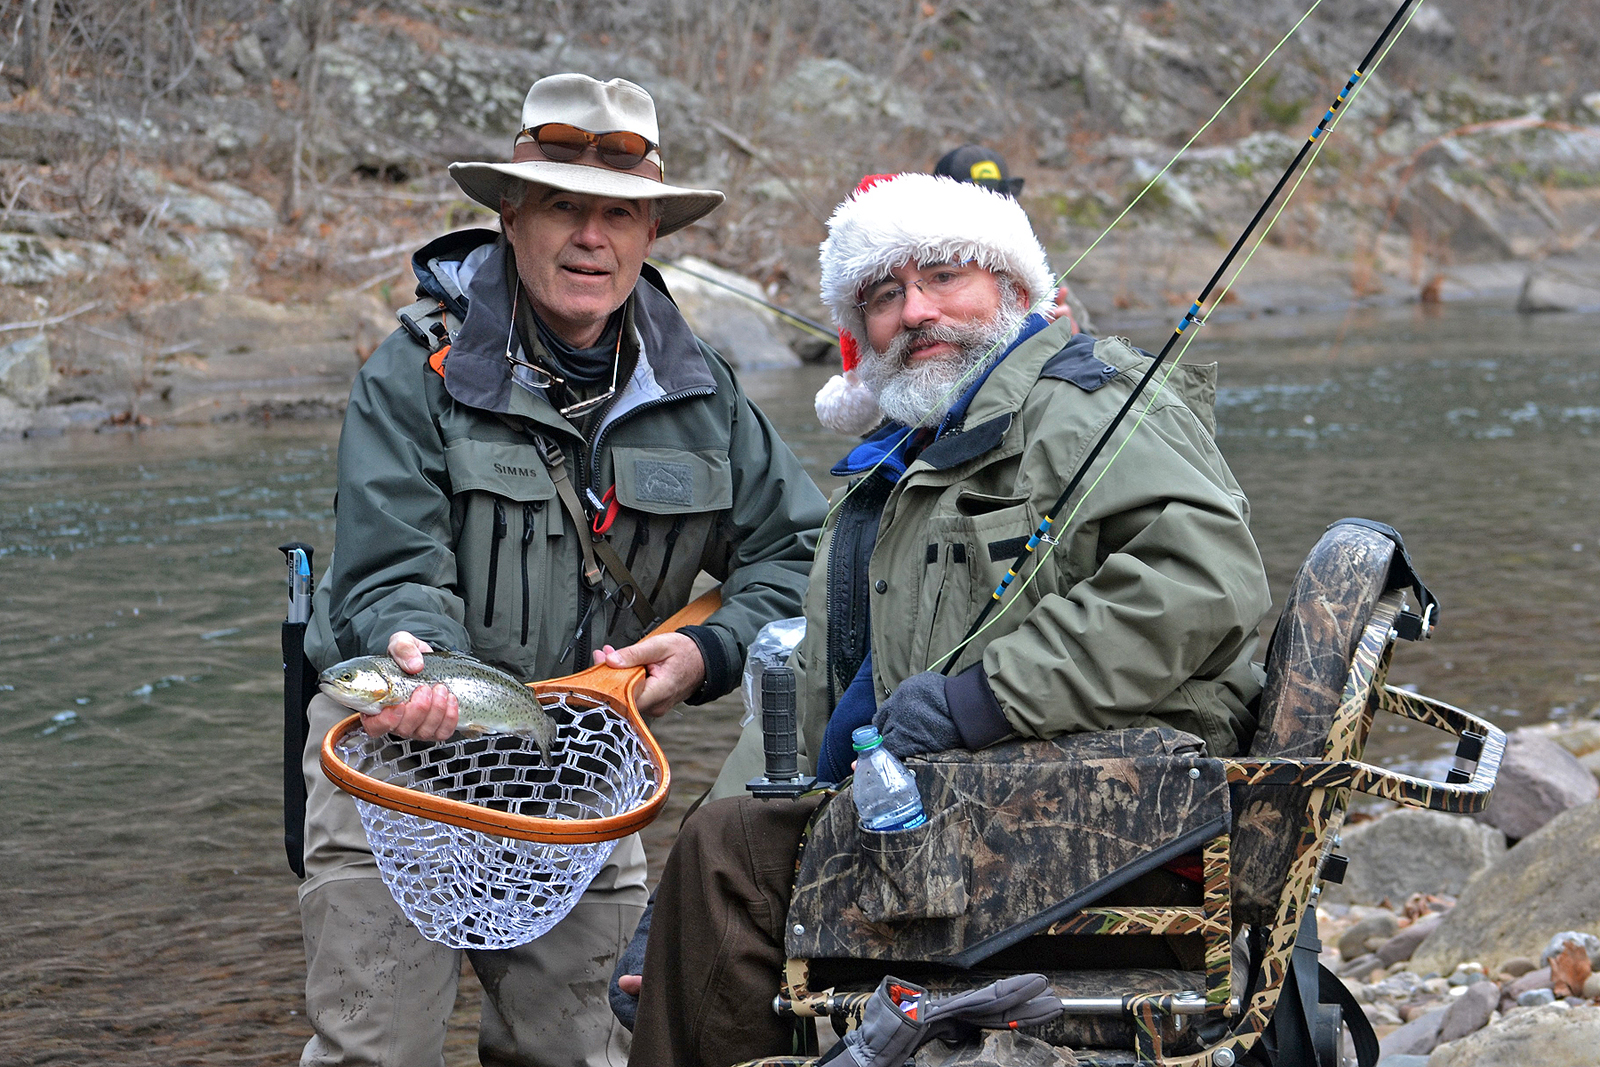 (left) PHWFF volunteer, Bruce Gilley, a veteran himself, helps (right) retired Maj. Rick Warrington and PHWFF Fort Belvoir participant land a trout during the Sixth Annual PHWFF Fly Fest at Harman's Luxury Log Cabins in Cabins, West Virginia, Dec. 2-4. The annual three-day event gives veterans and disabled service members an opportunity to fly fish with volunteer guides on the waters of the North Fork River. (photo by Juli Hedrick)